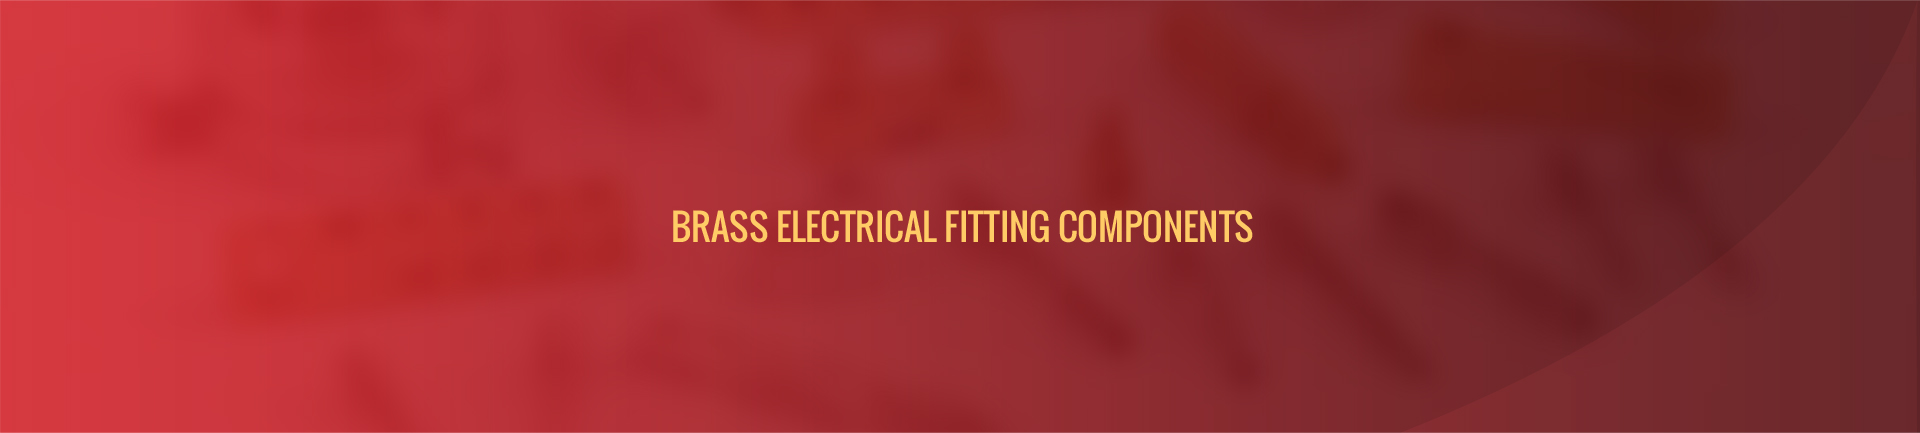 brass-electrical-fitting-components-banner